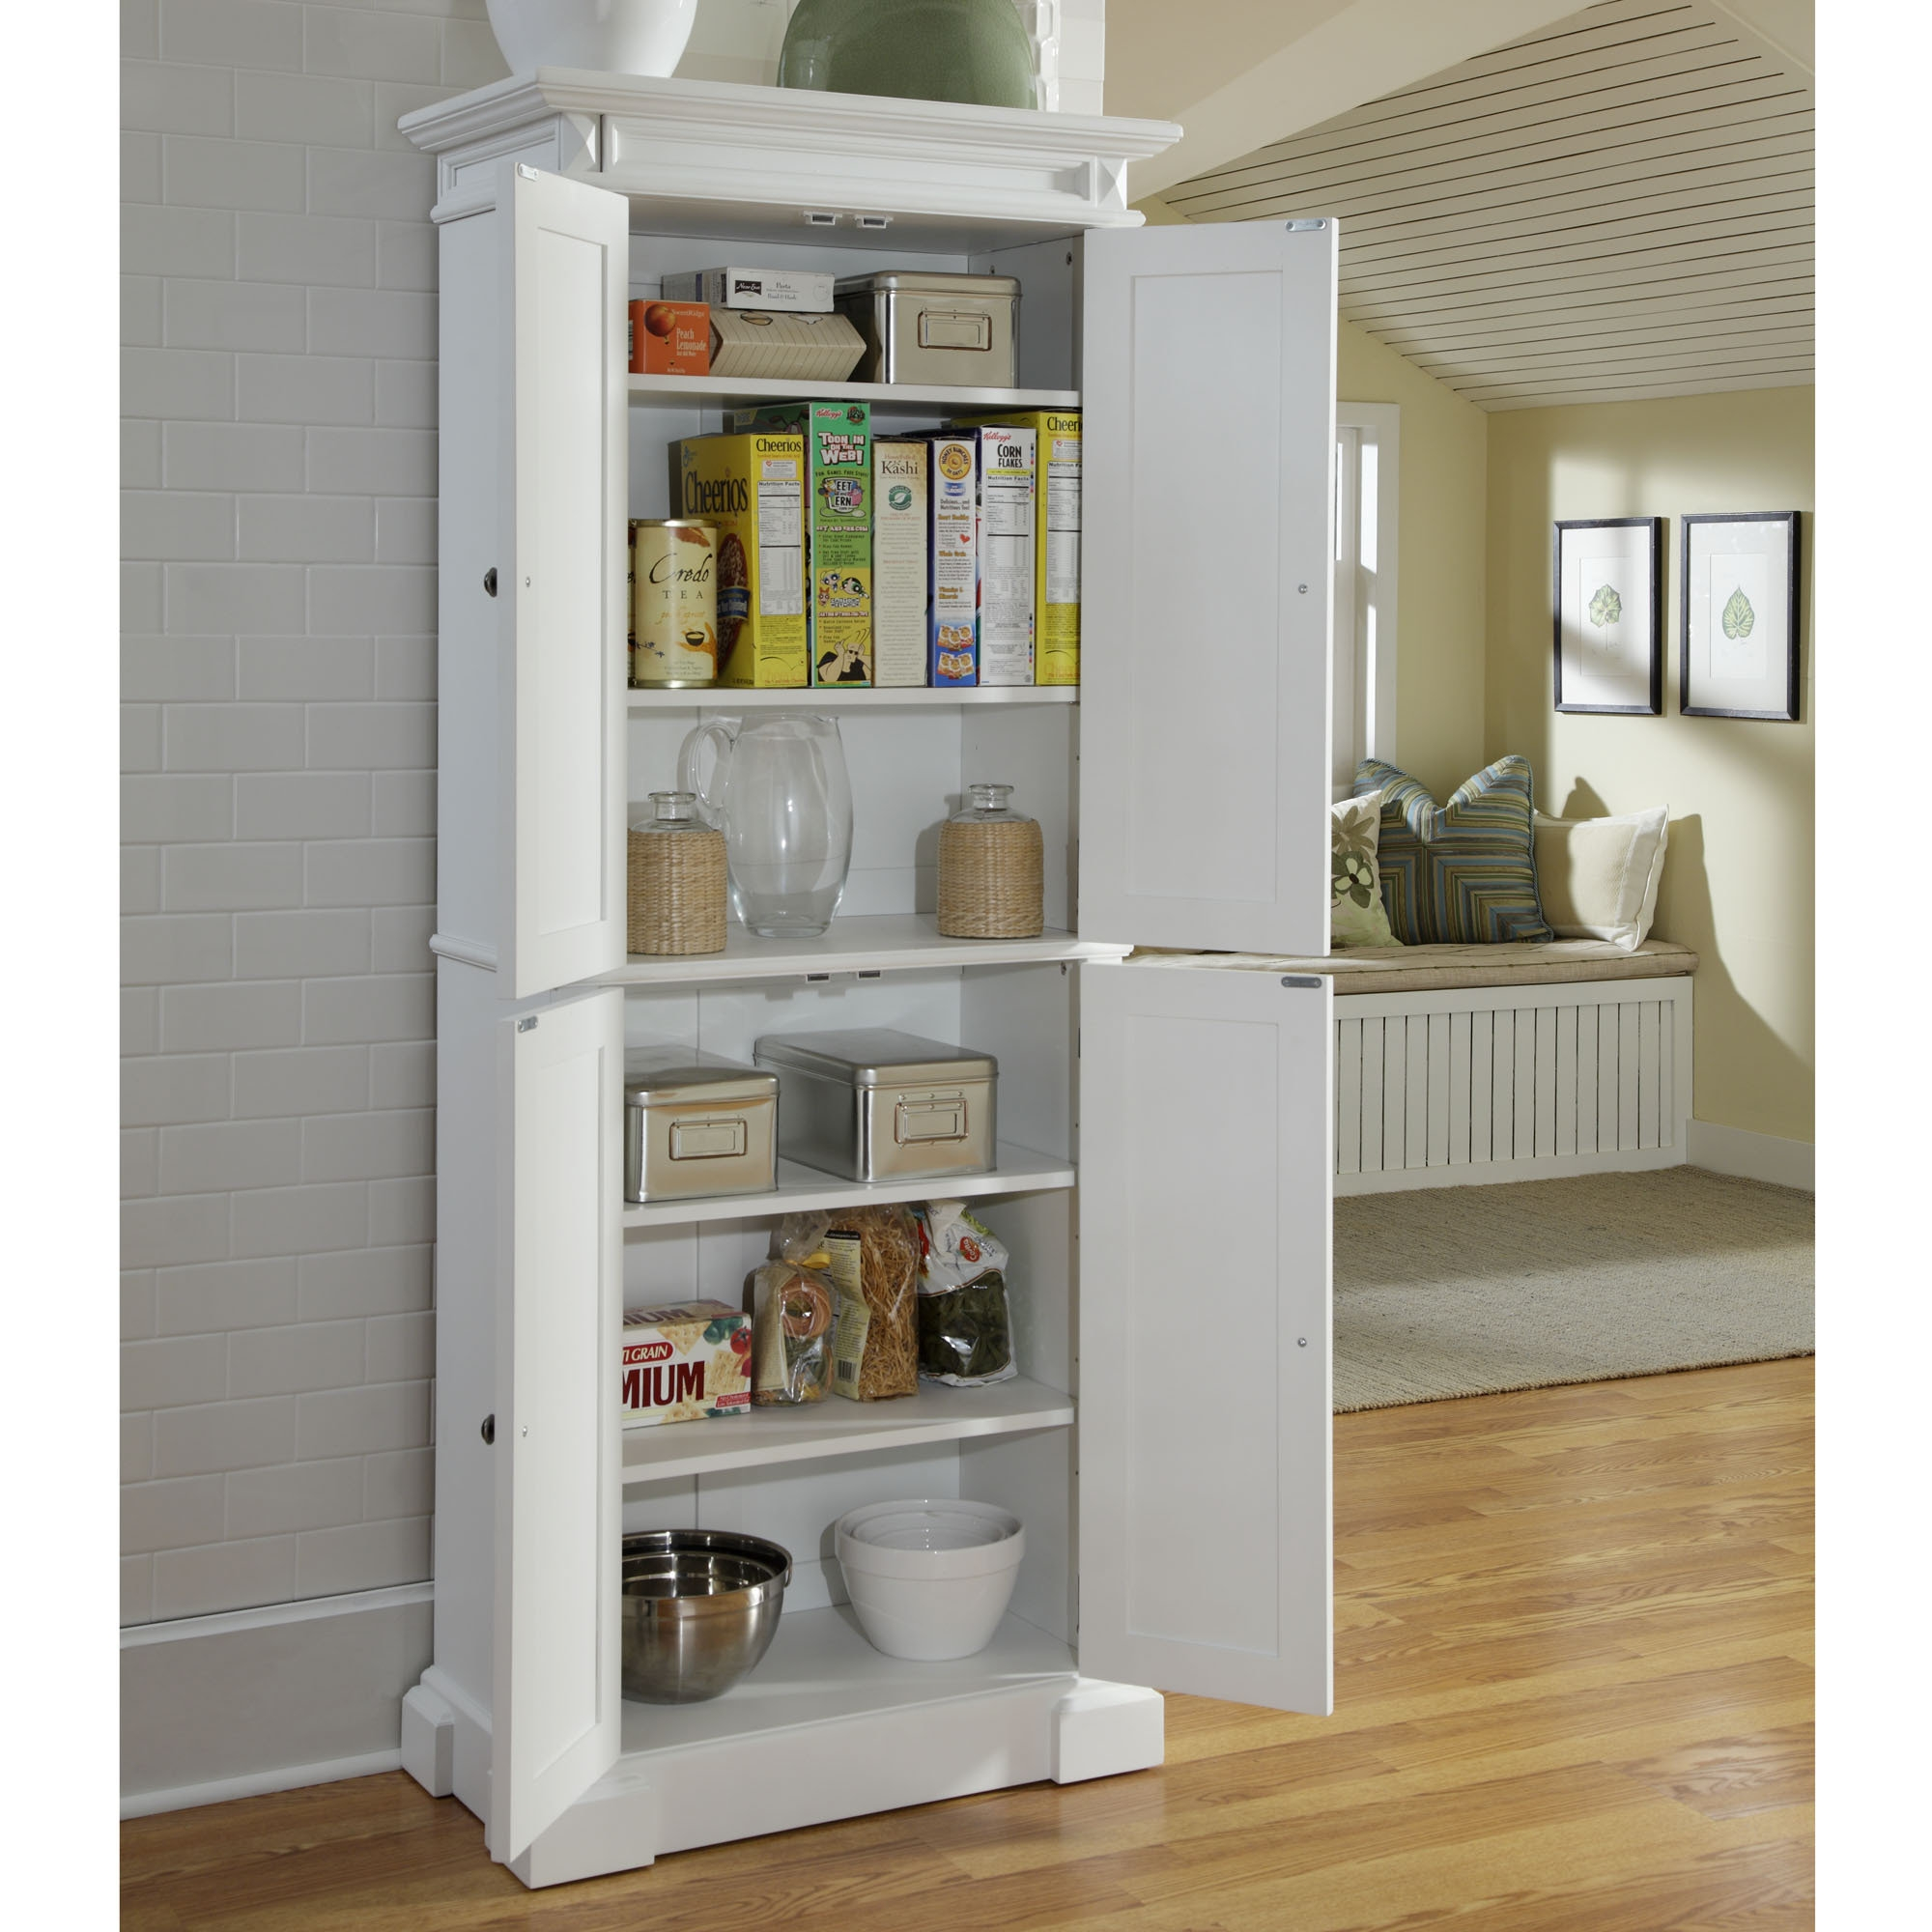 Permalink to Tall Kitchen Cabinet With Shelves